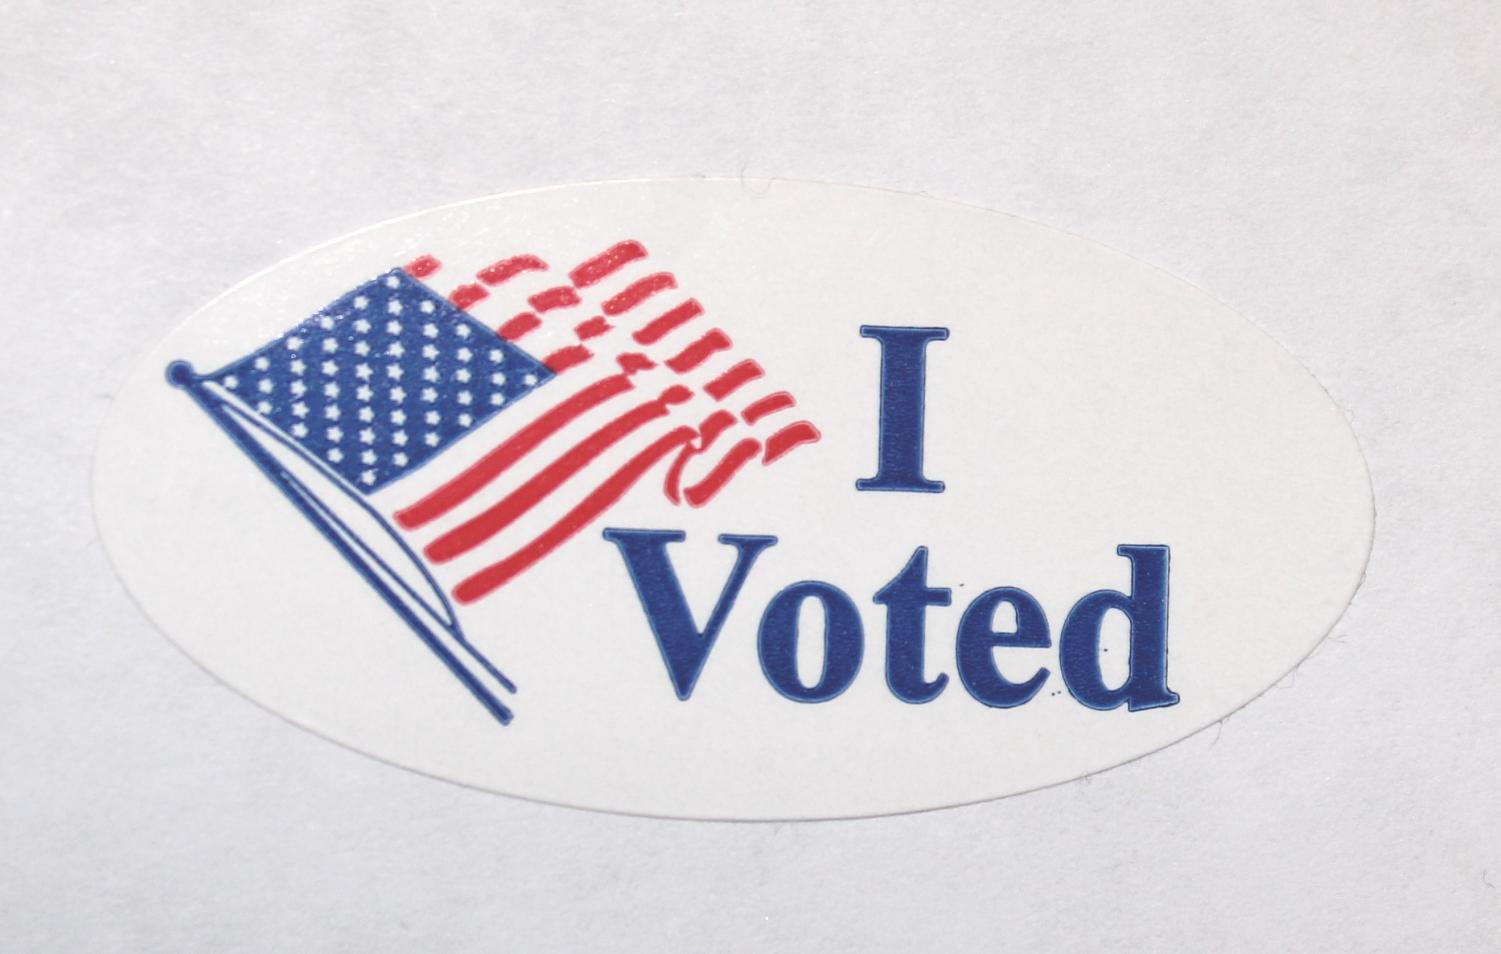 Get out and vote! Your voice matters!